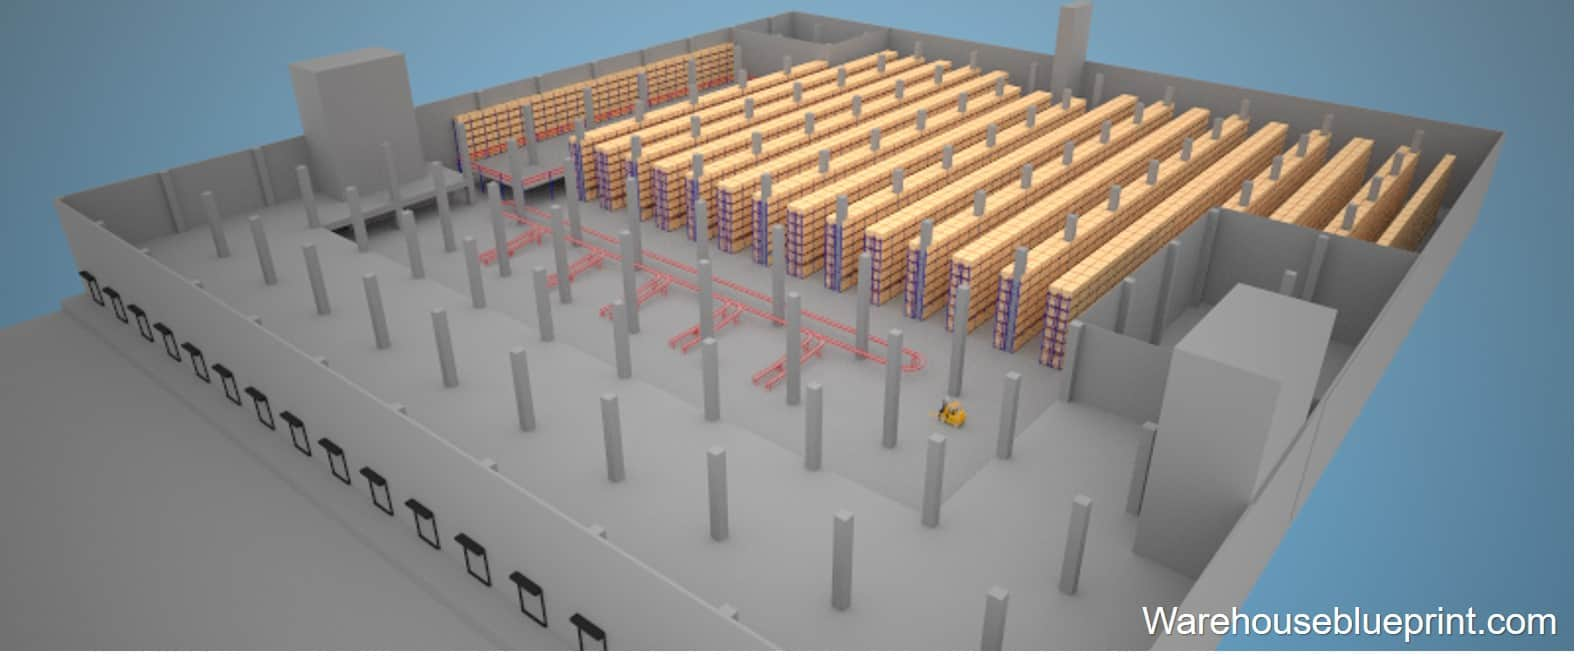 Warehouse Layout 20 - rendered